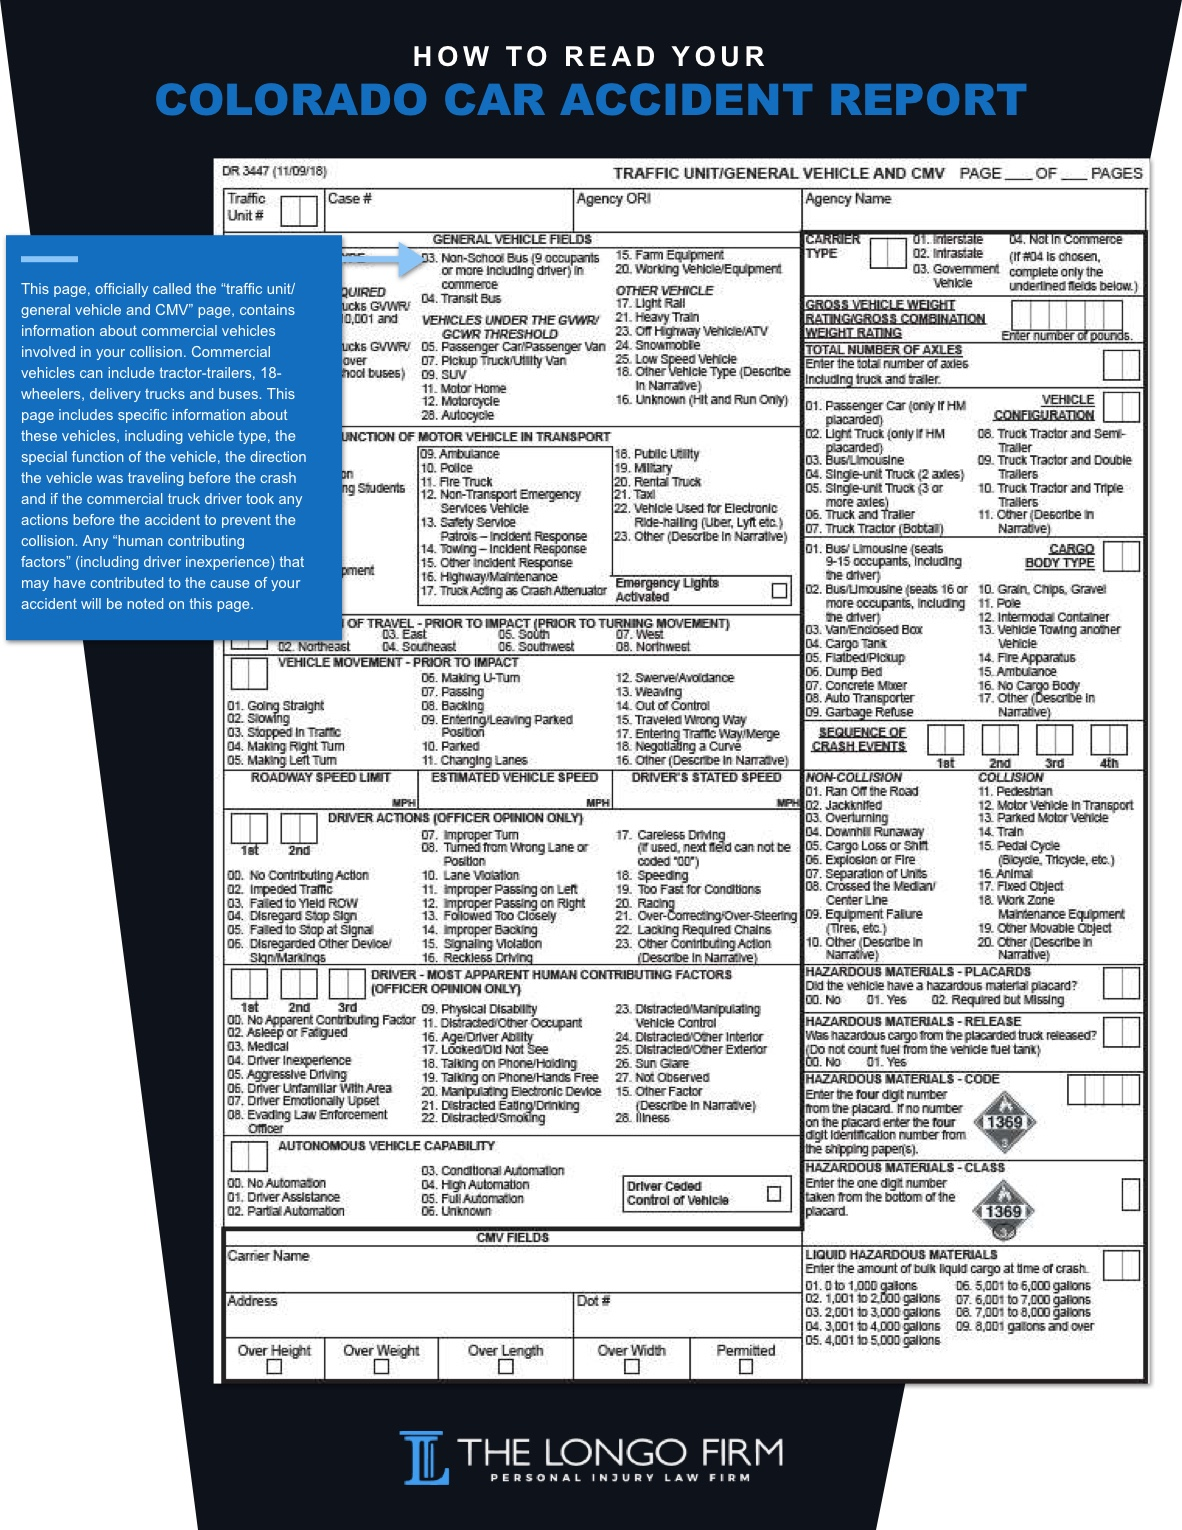 How To Read Your Colorado Accident Report pg. 4